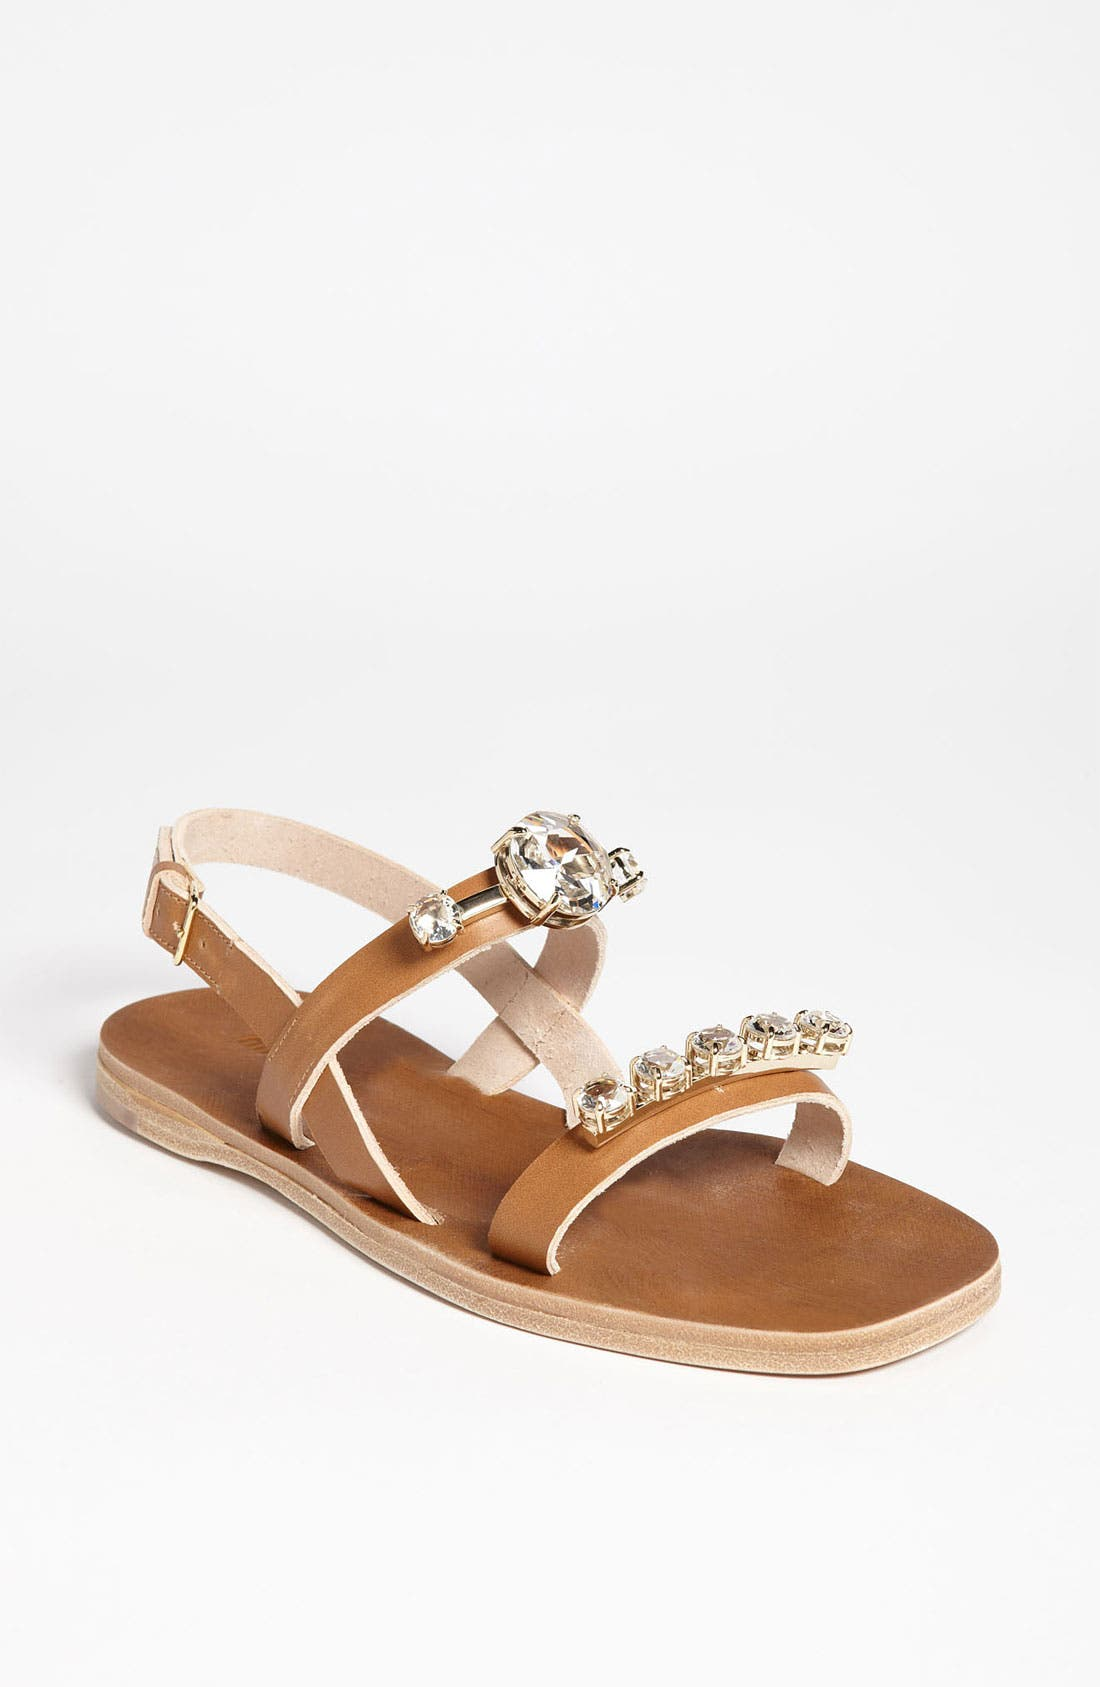 Alternate Image 1 Selected - Miu Miu Jeweled Sandal